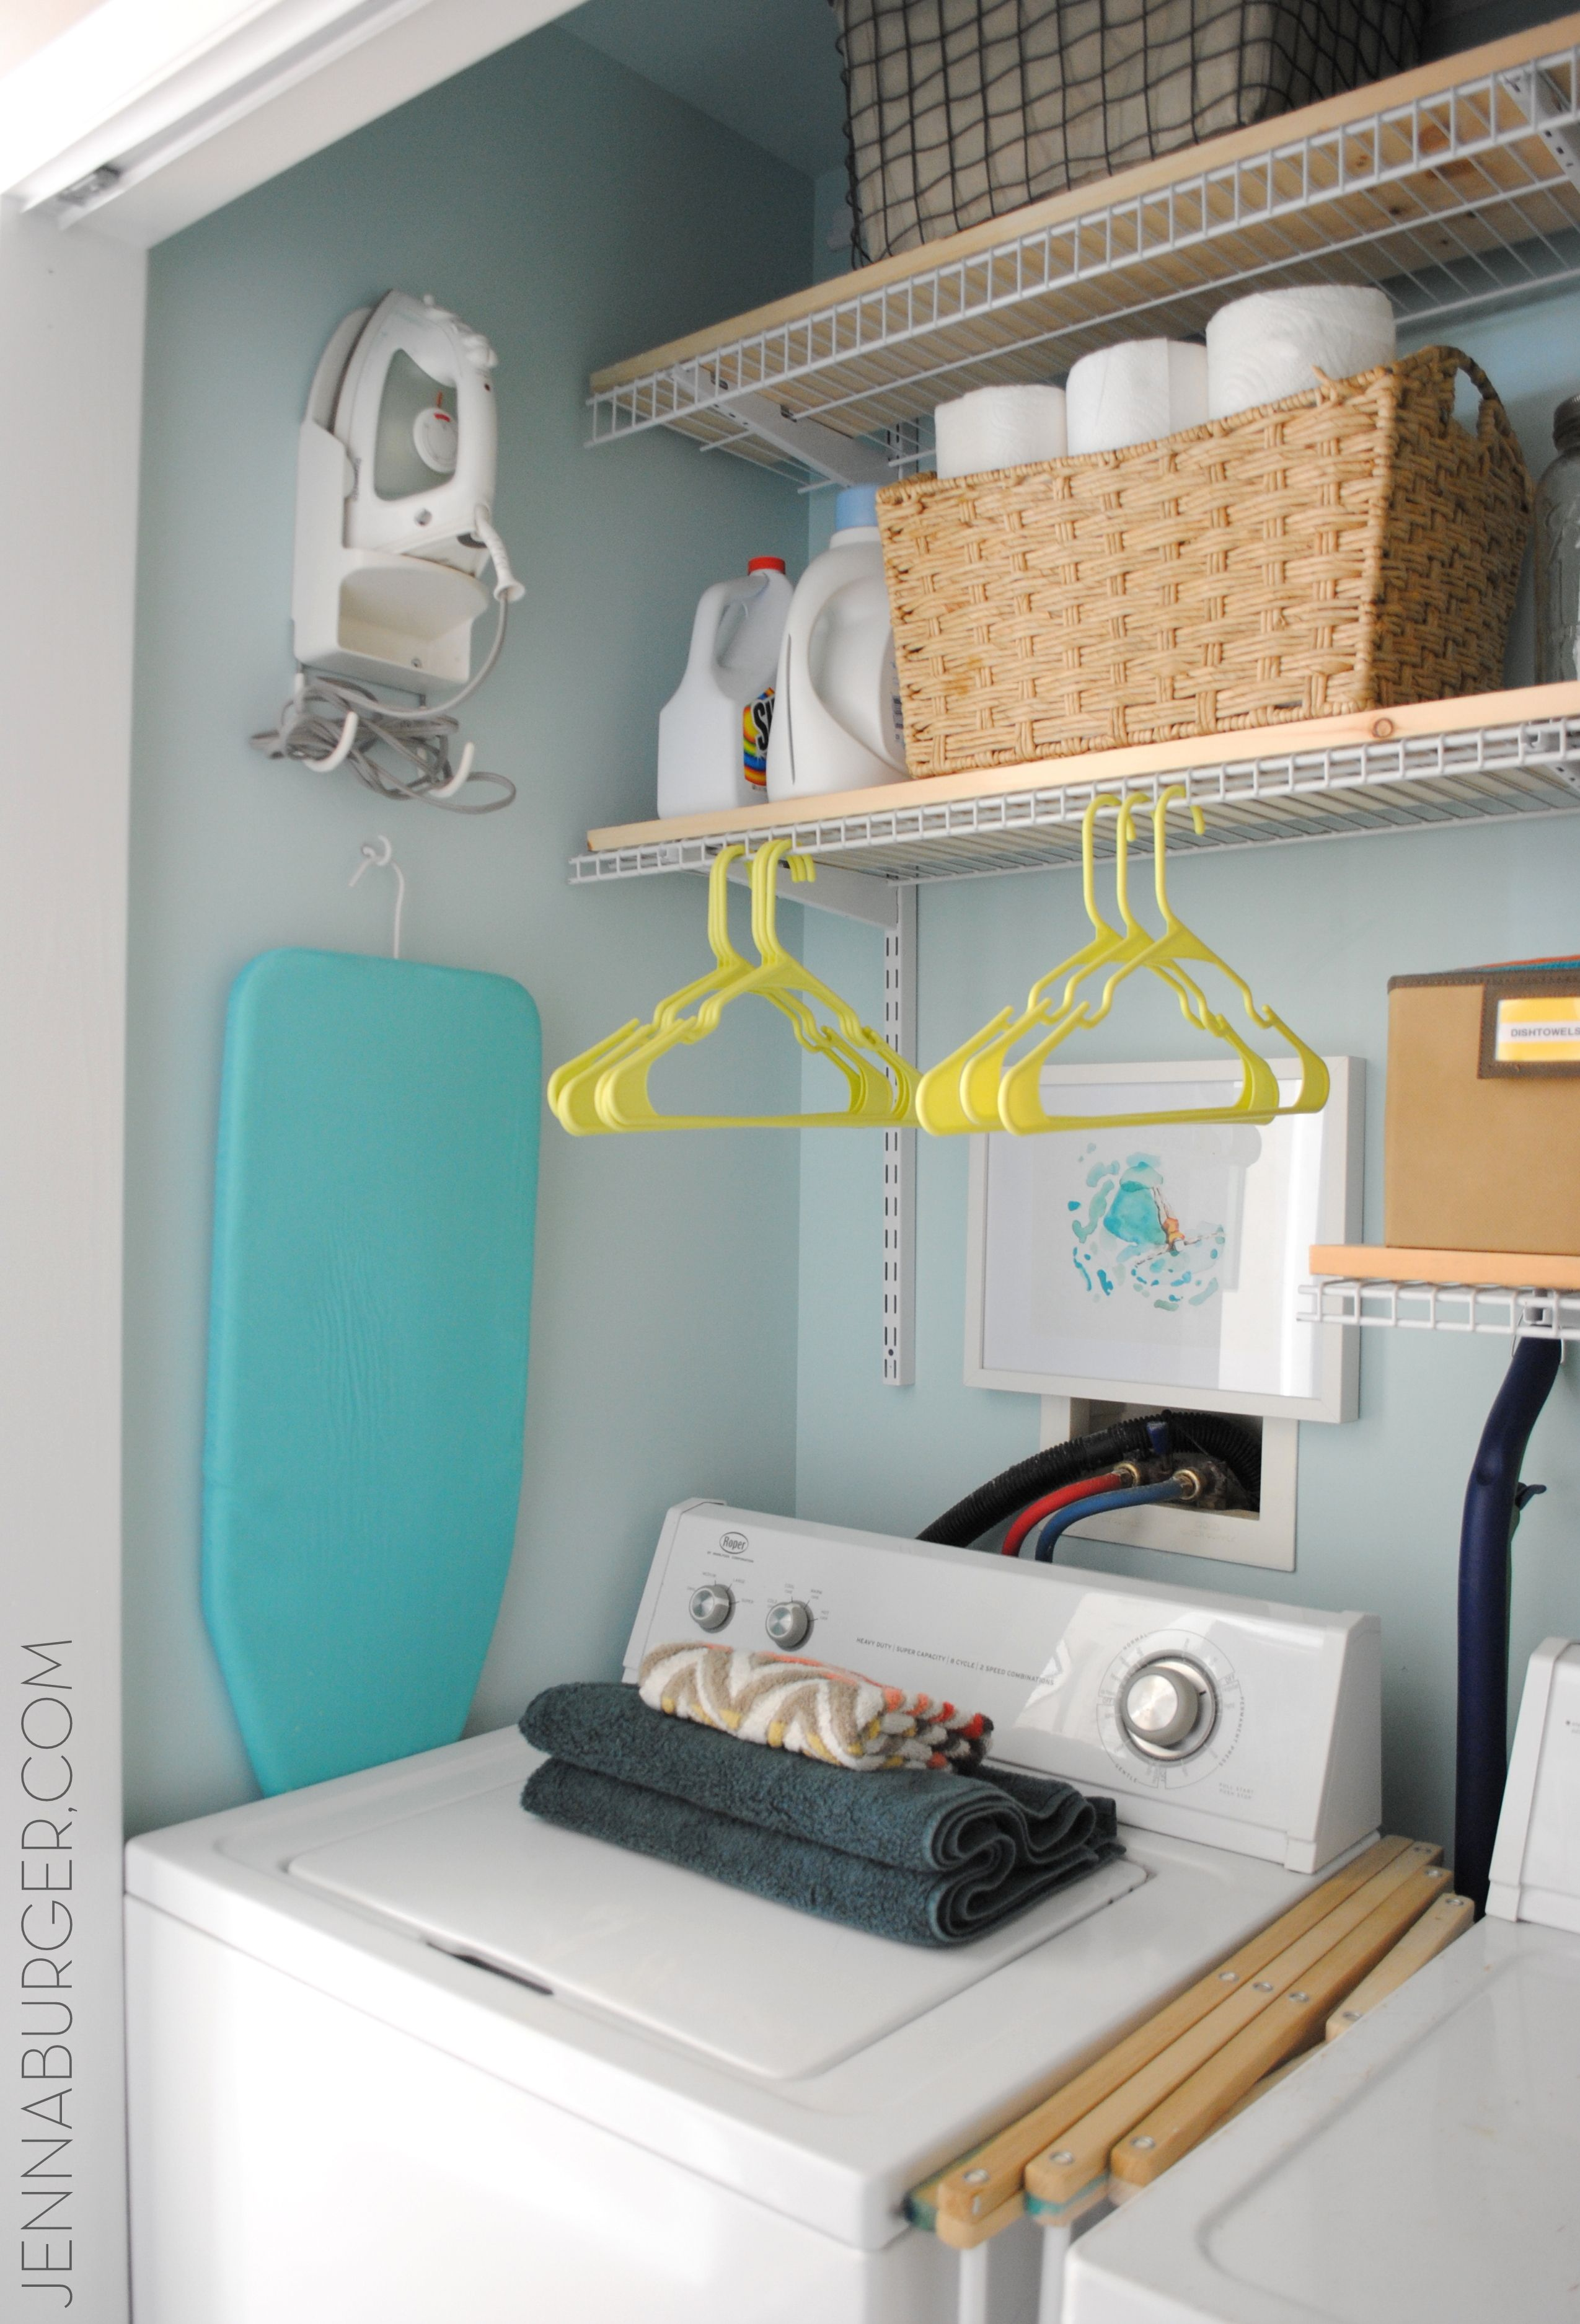 Charmant Laundry Closet, Laundry Rooms, Wash Room, Moving Out, Room Closet, Fries,  Cots, Closet Ideas, Before After